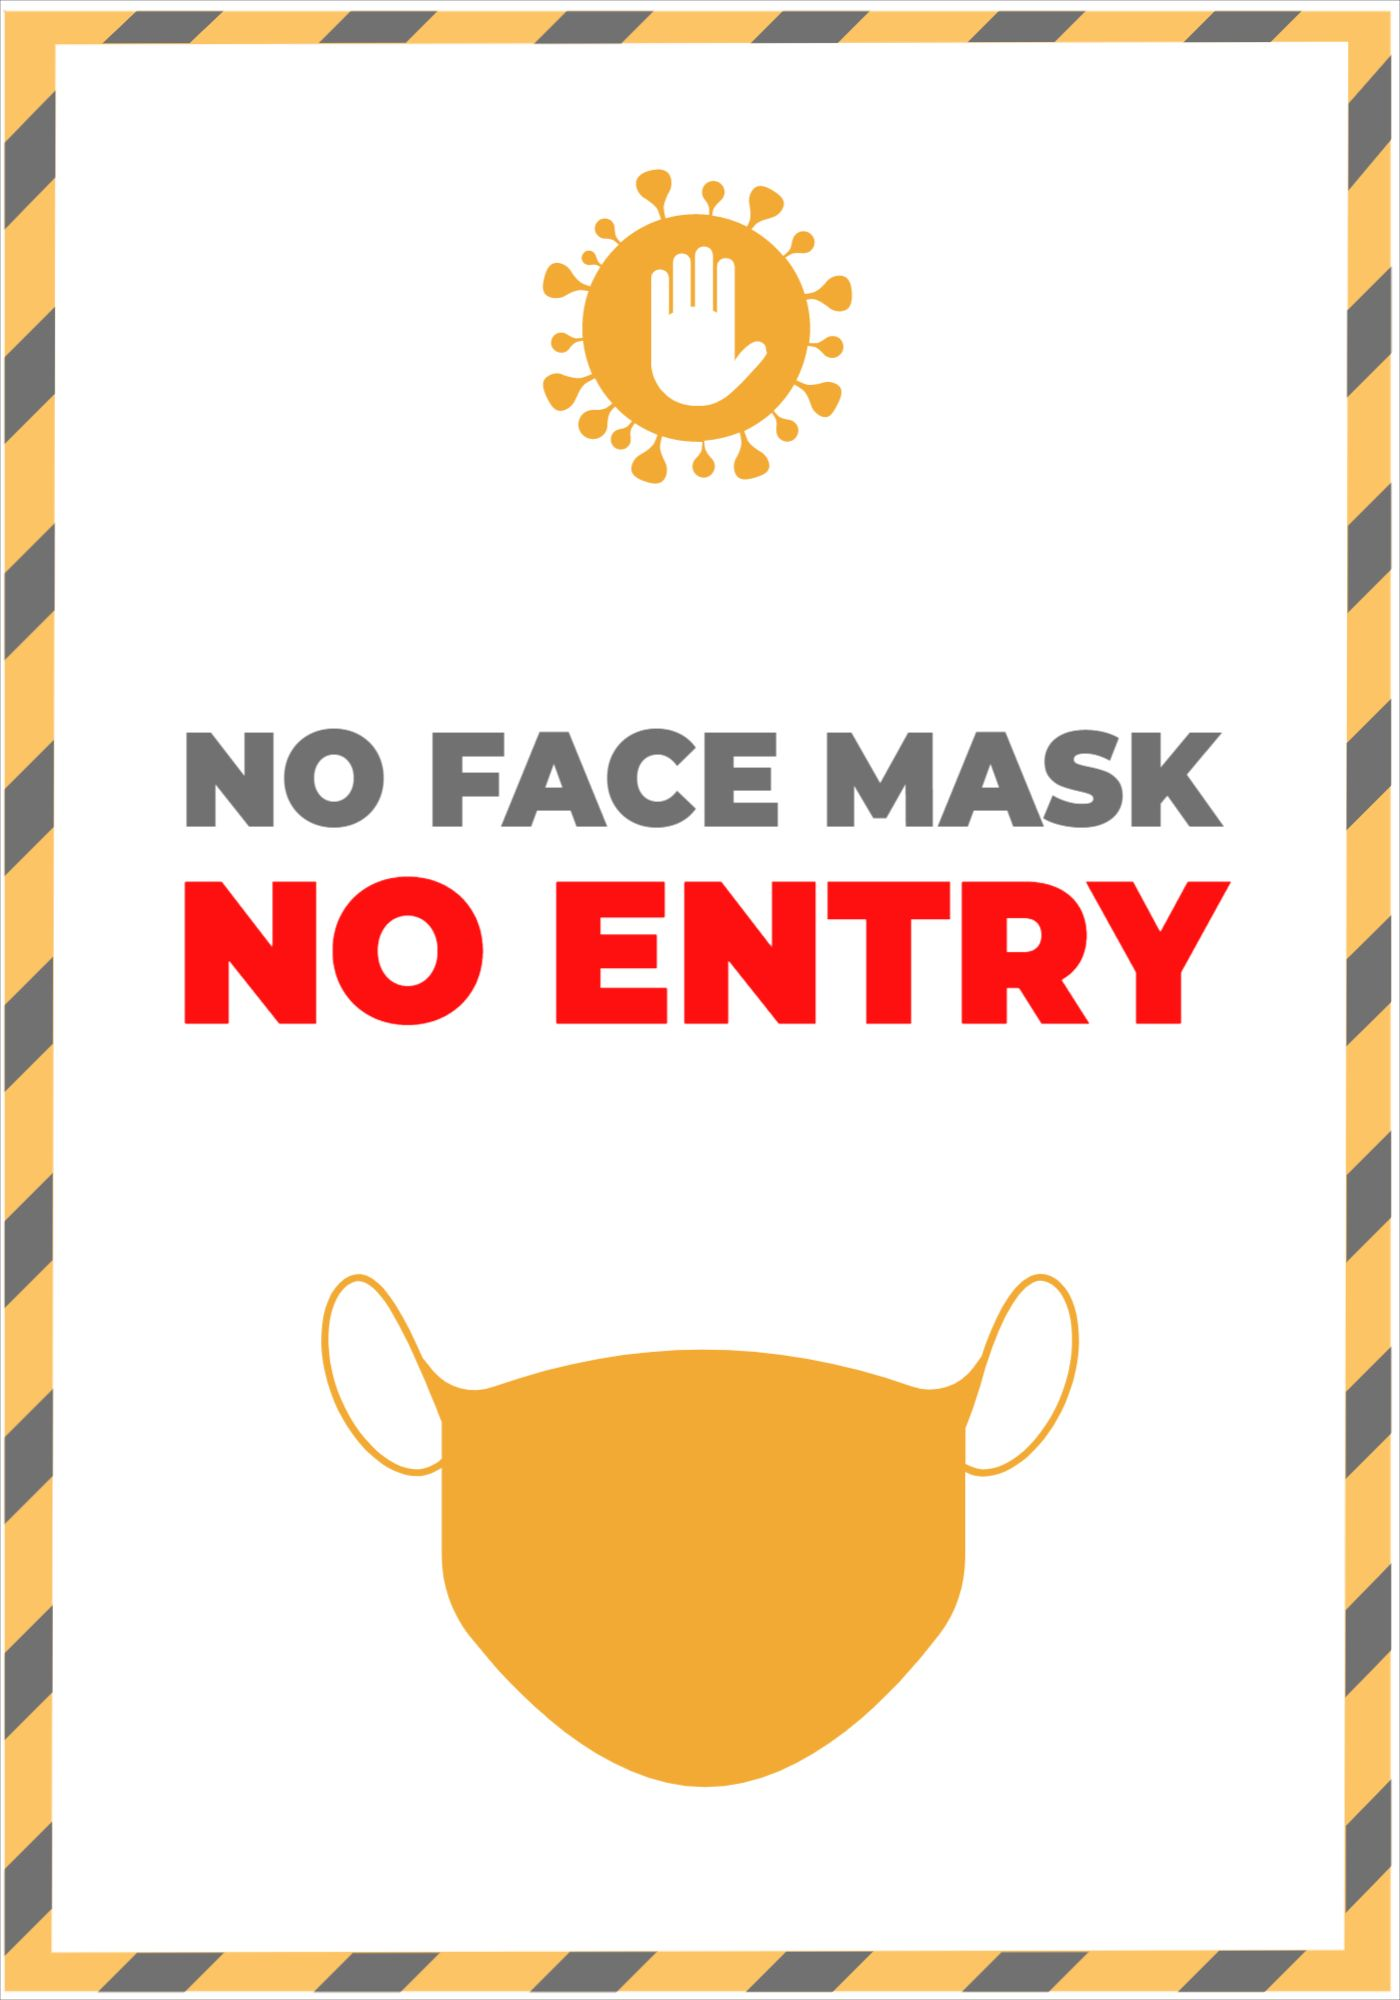 No Mask No Entry Poster Template